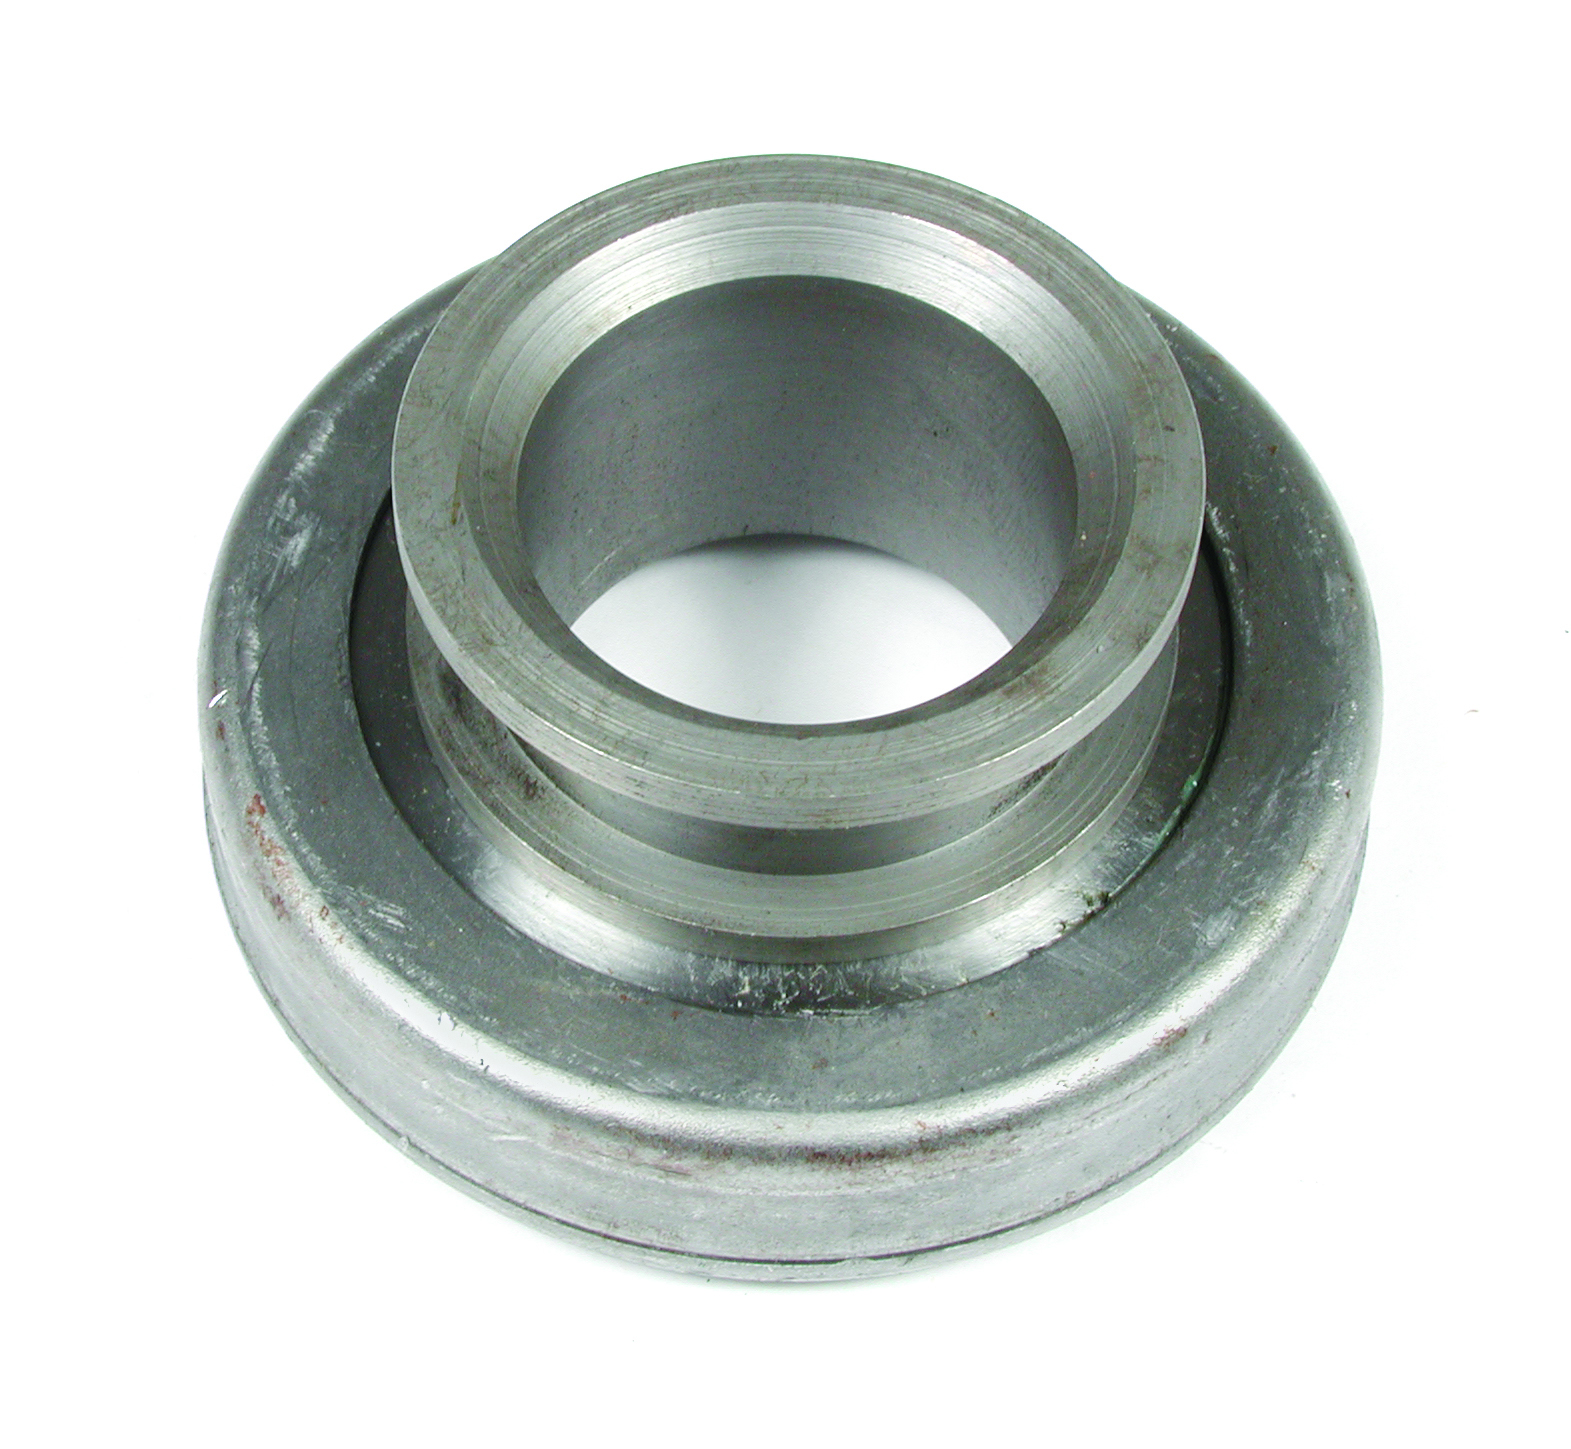 70-104 Hays Clutch Throwout Bearing For Use With GM Engine